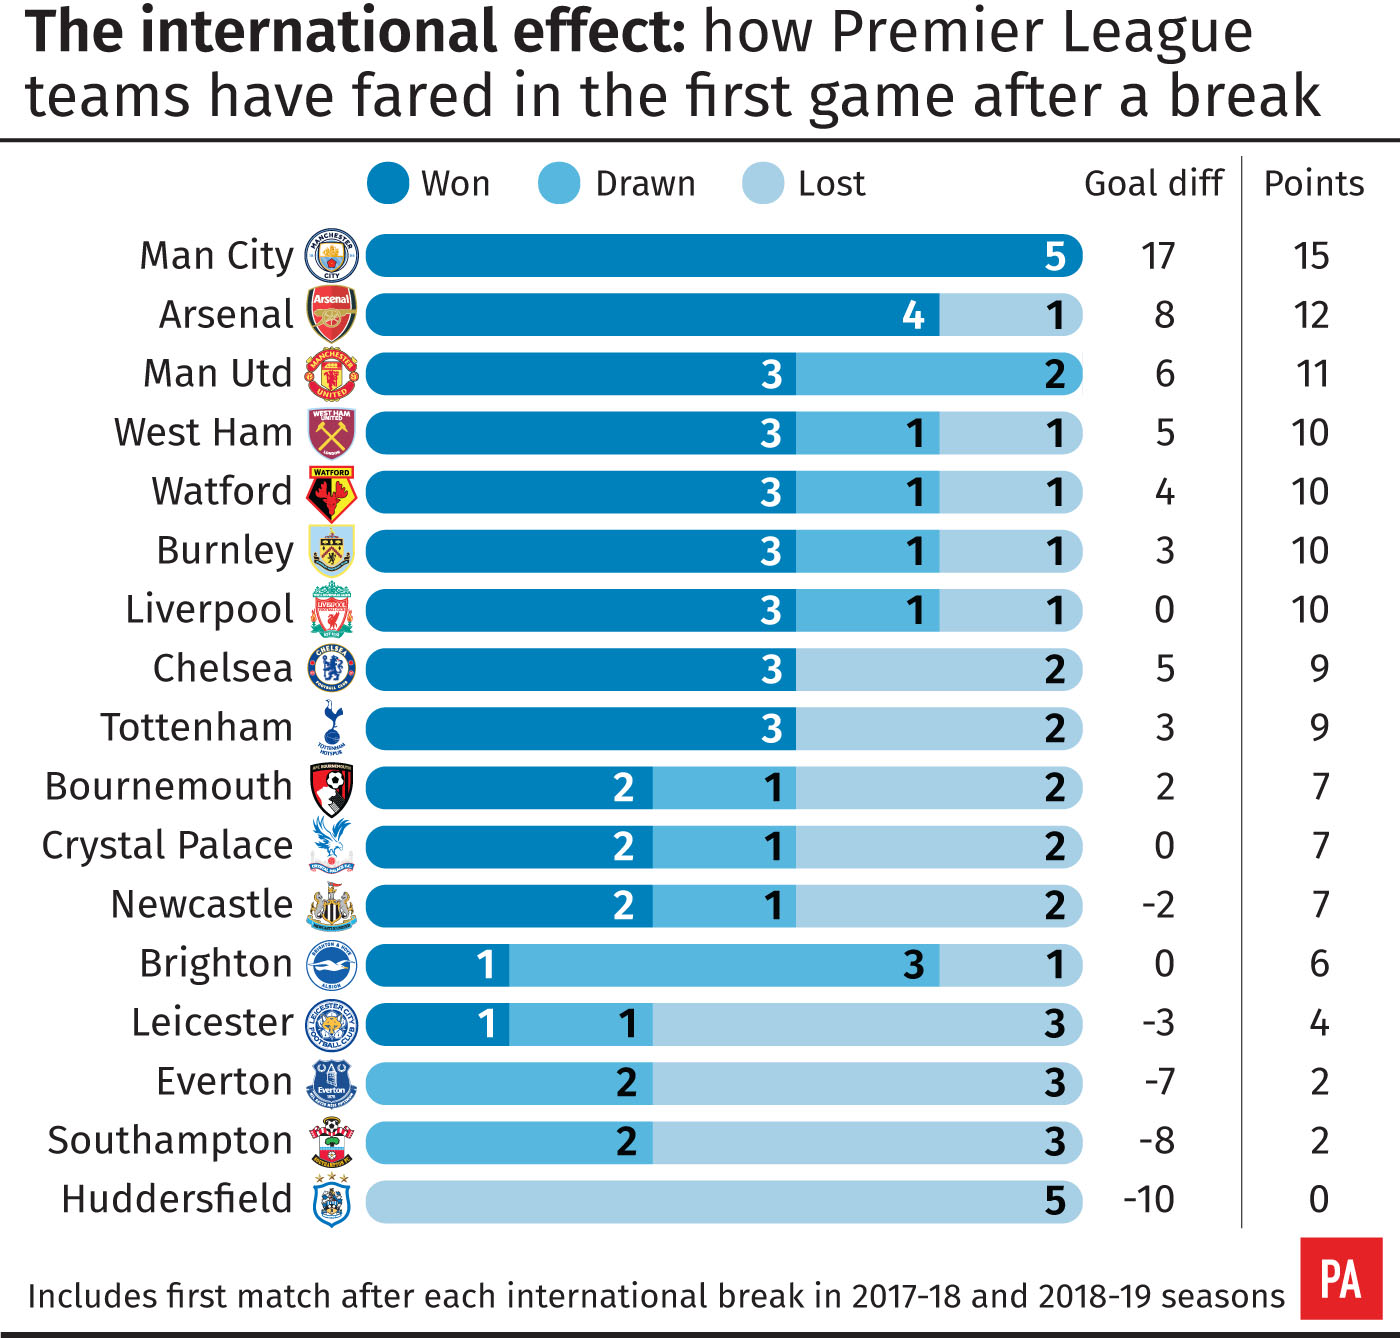 Premier League clubs' record after international breaks